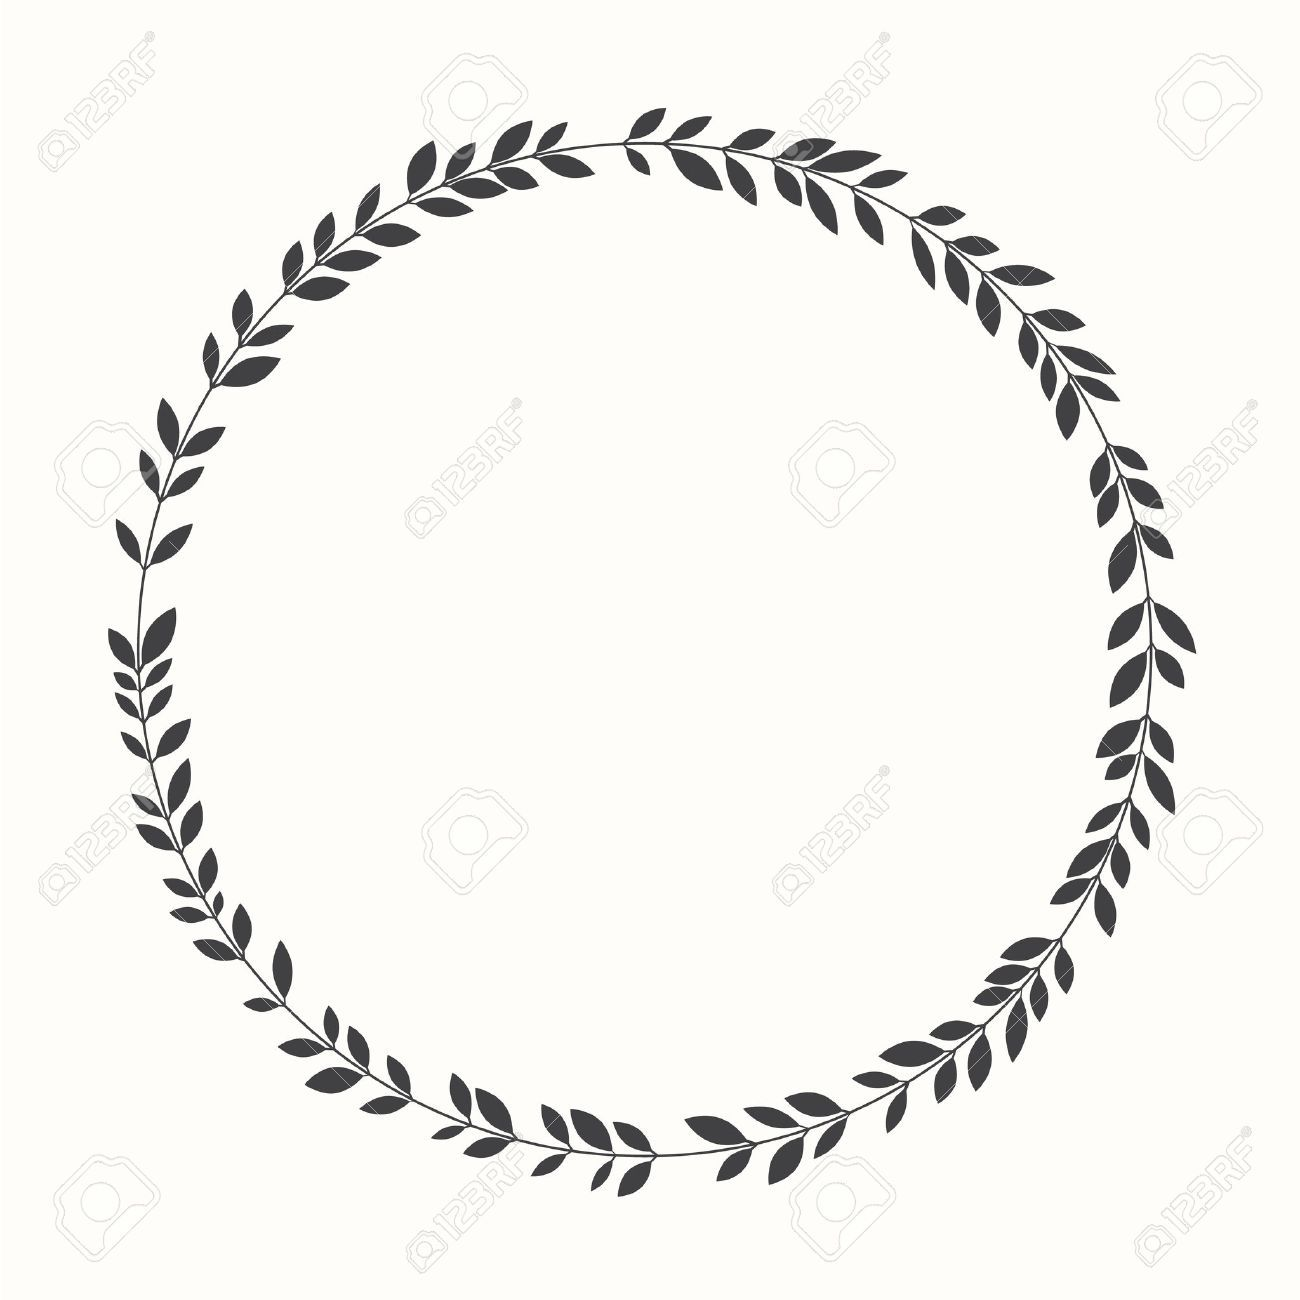 Free laurel wreath clipart » Clipart Portal.